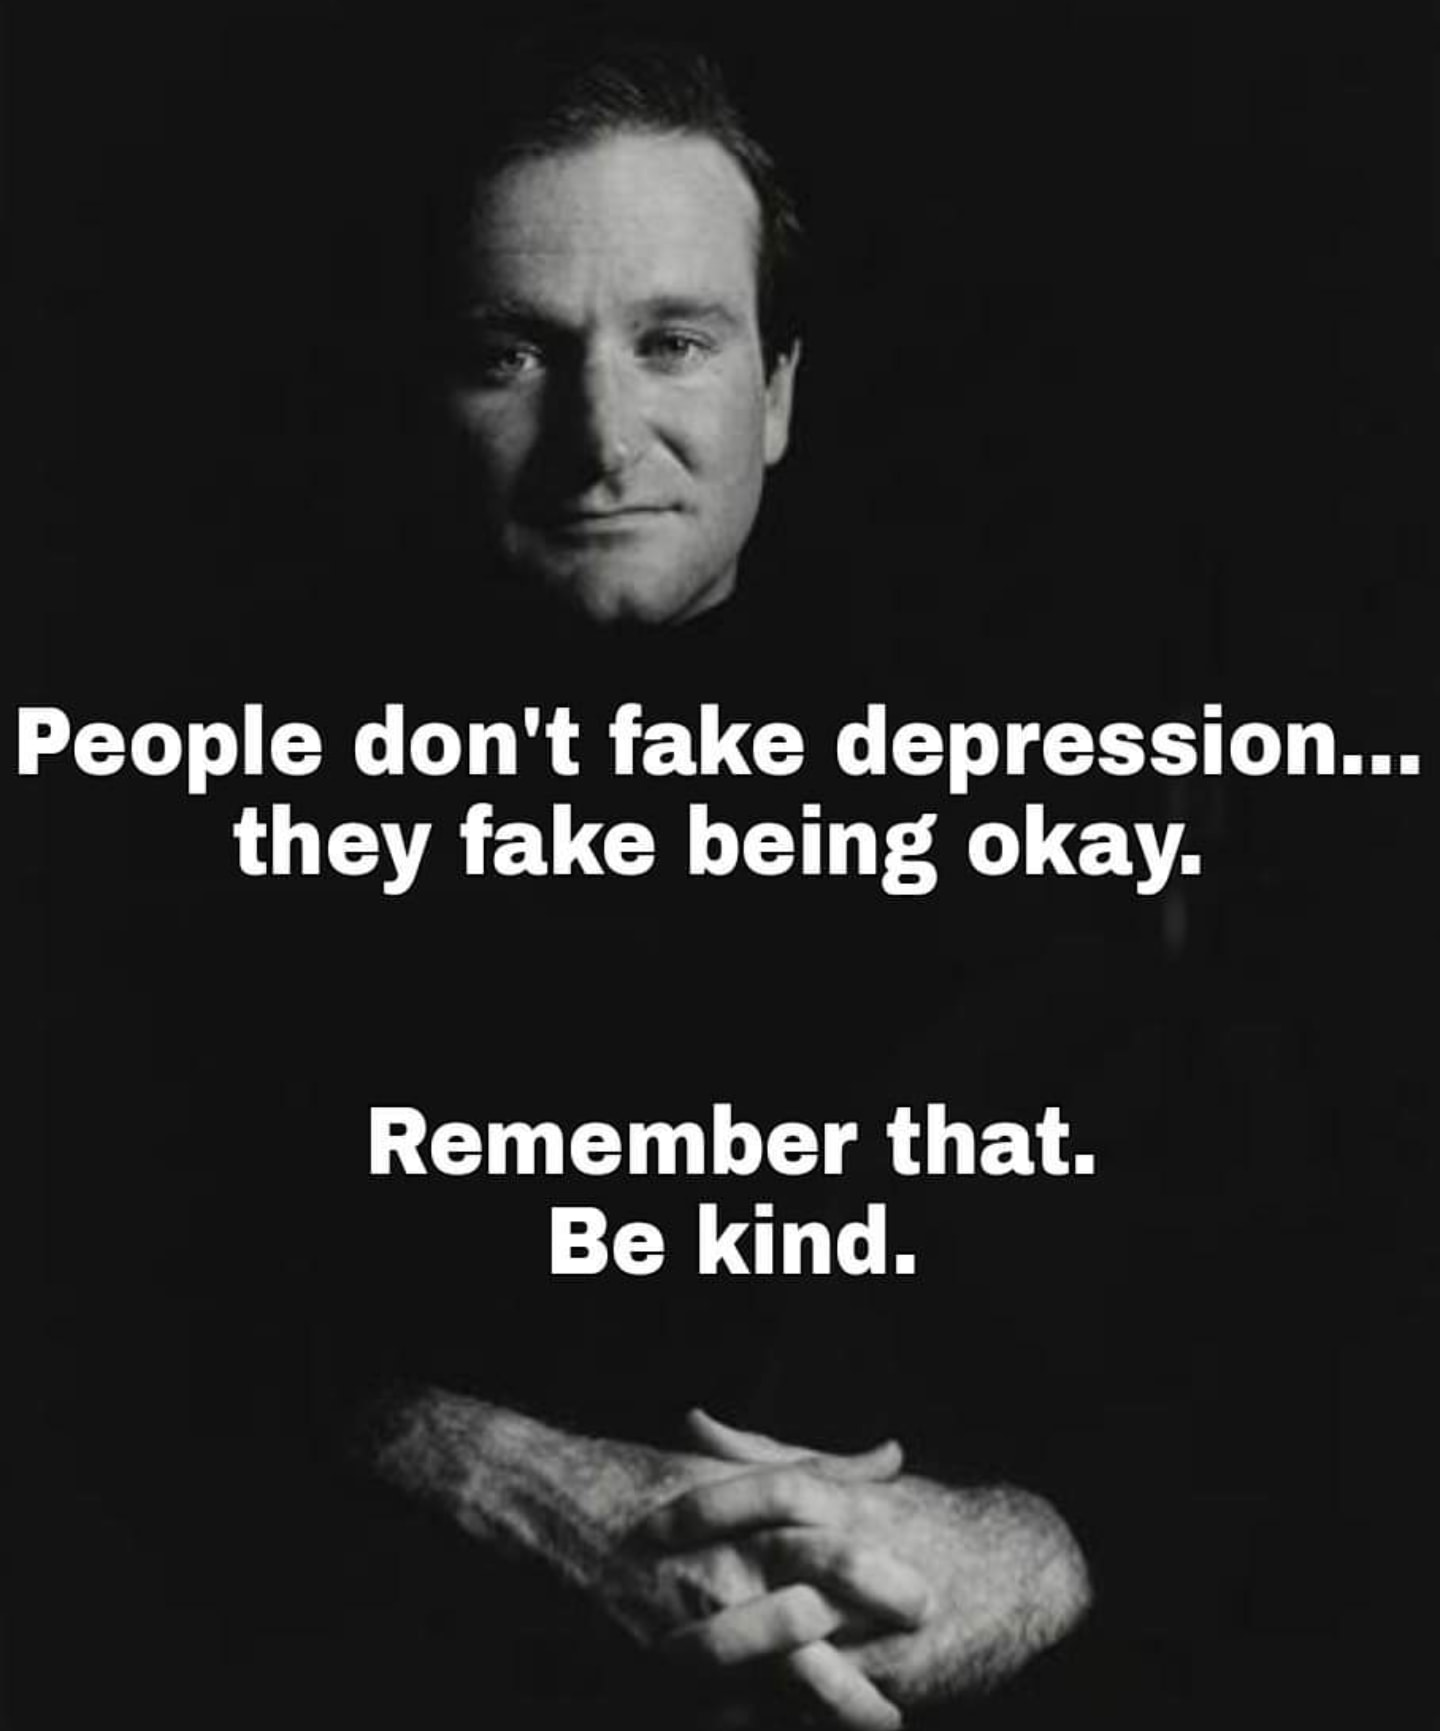 people don't fake depression, they fake being okay, remember that, be kind